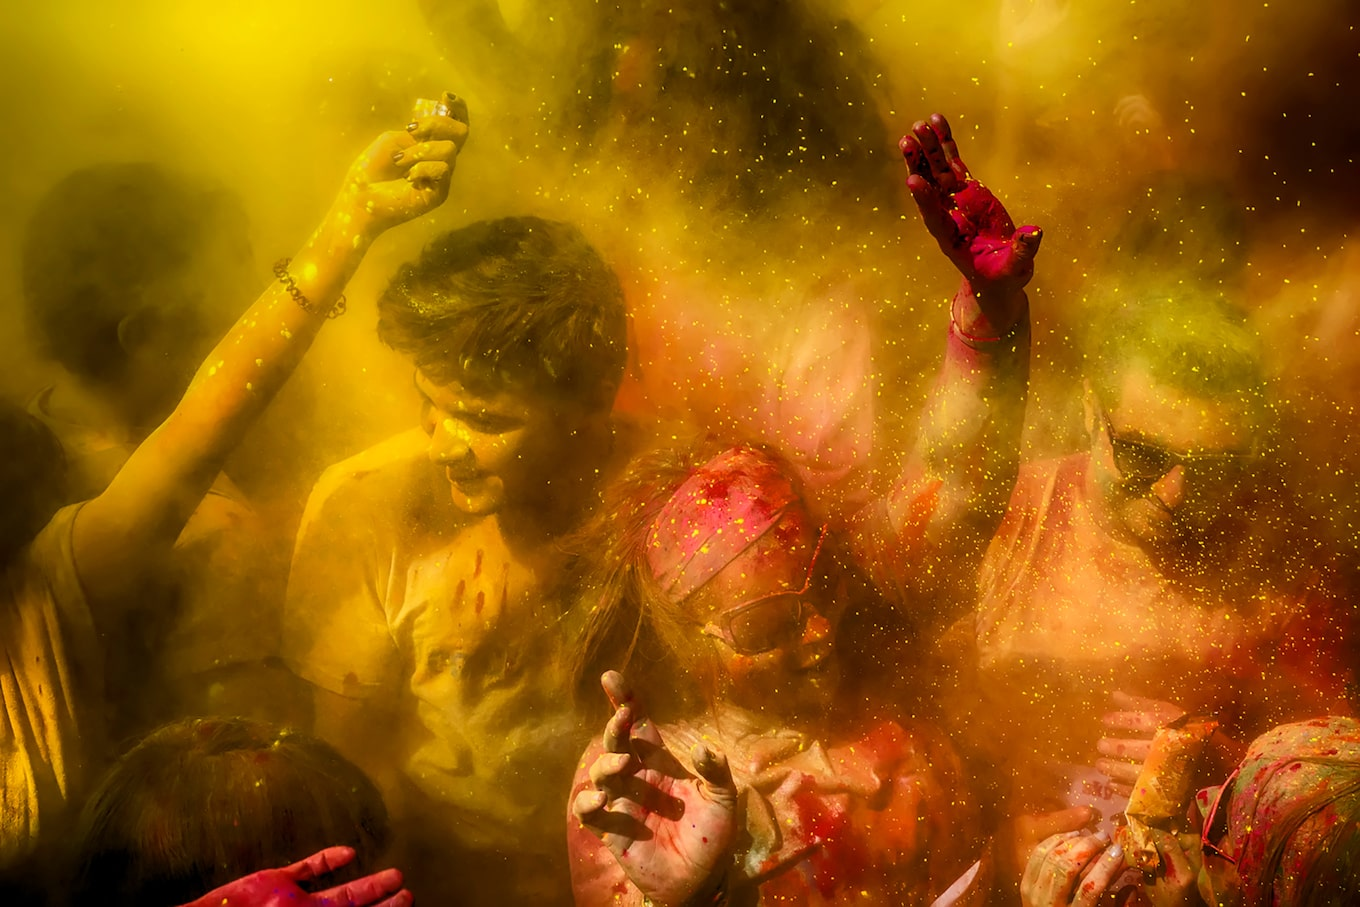 murat-pulat-sony-alpha-7II-dancers-in-cloud-of-coloured-dust